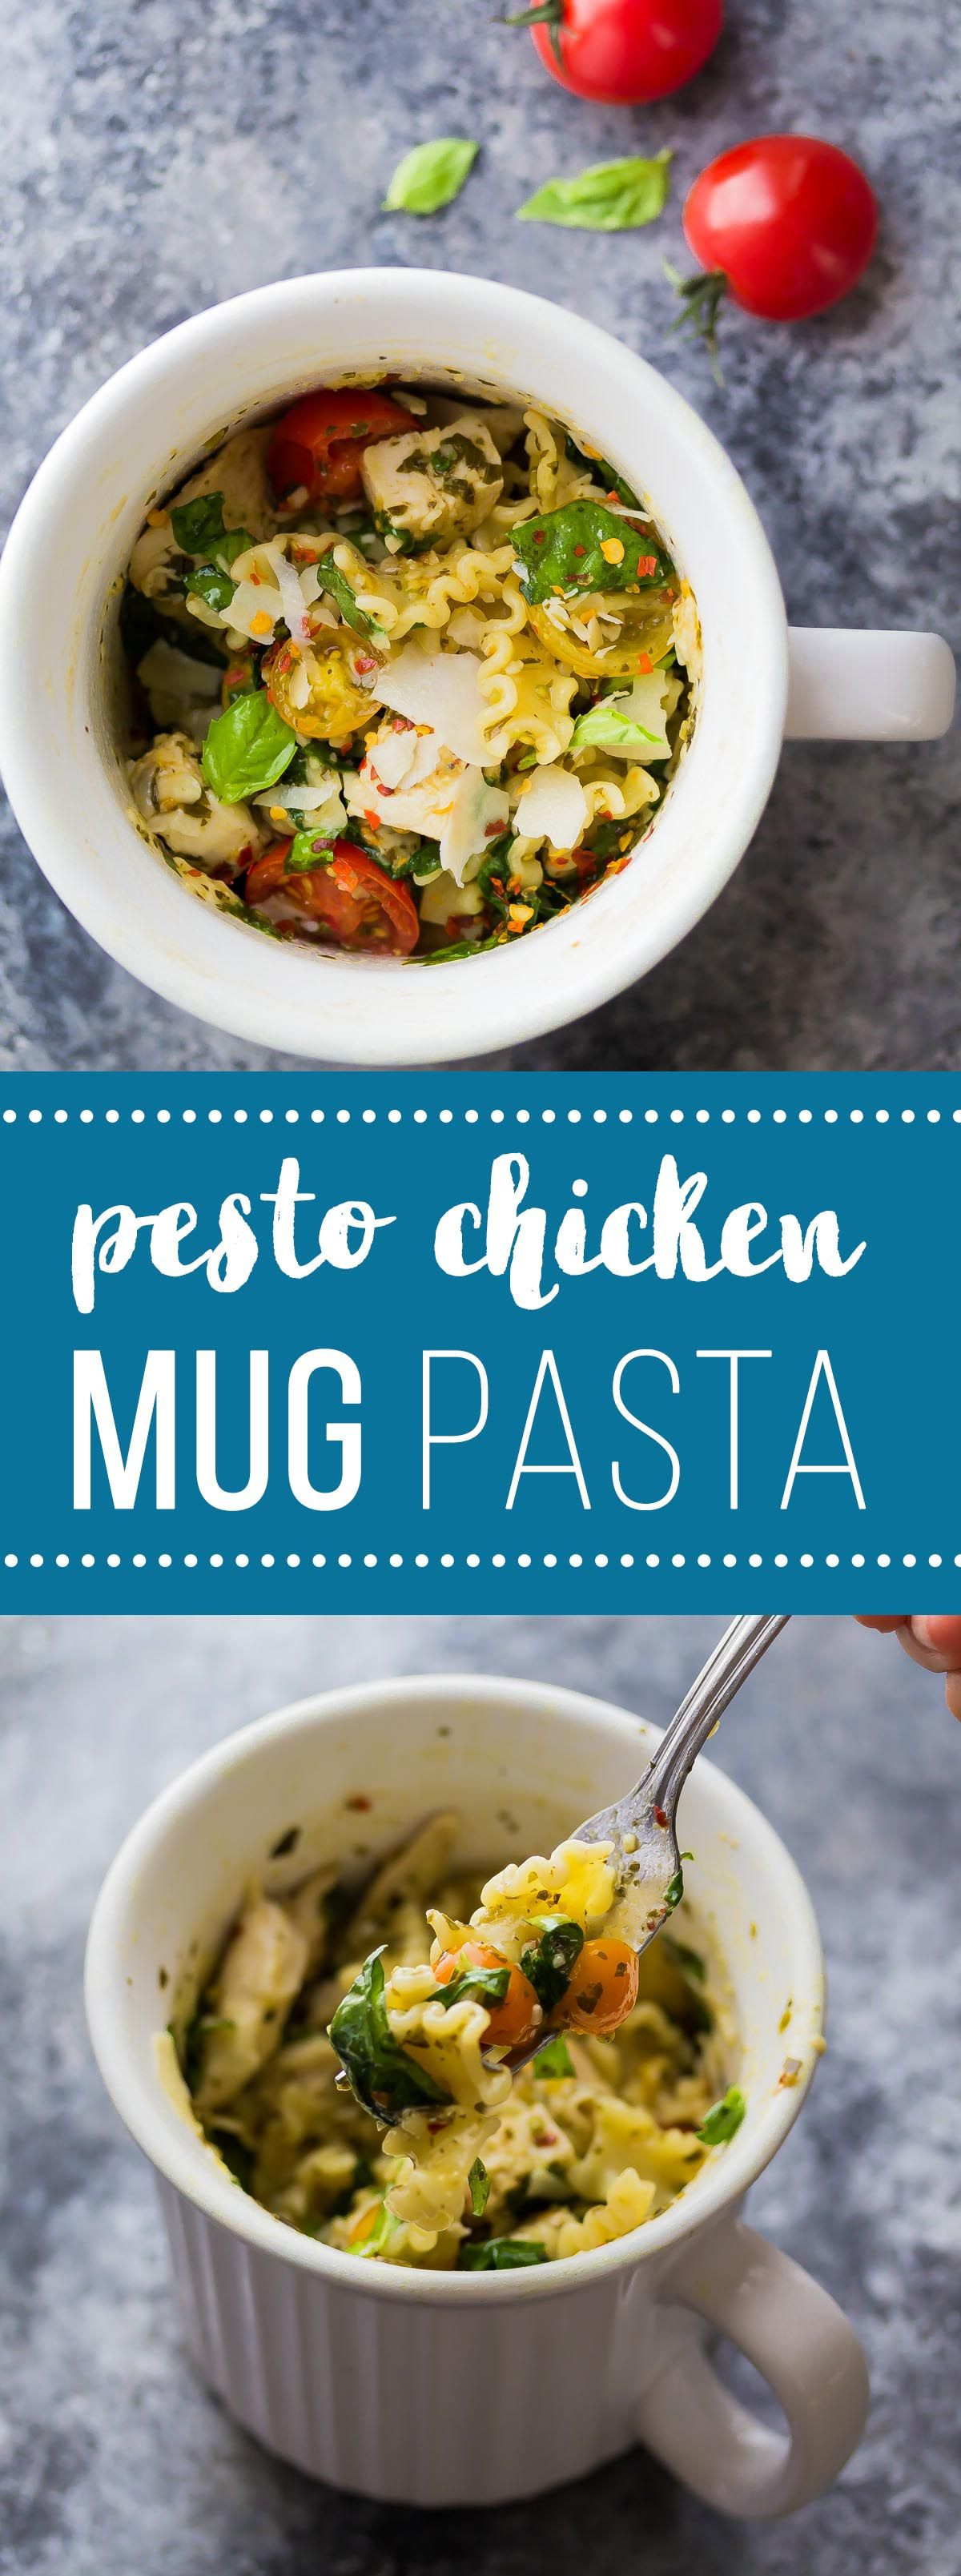 This Pesto Chicken Mug Pasta Cooks In The Microwave In Just 10 Minutes! The  Perfect Dinner For One, Dorm Room Meal, Or Lunch On The Go! View The Full  Rec. Part 97